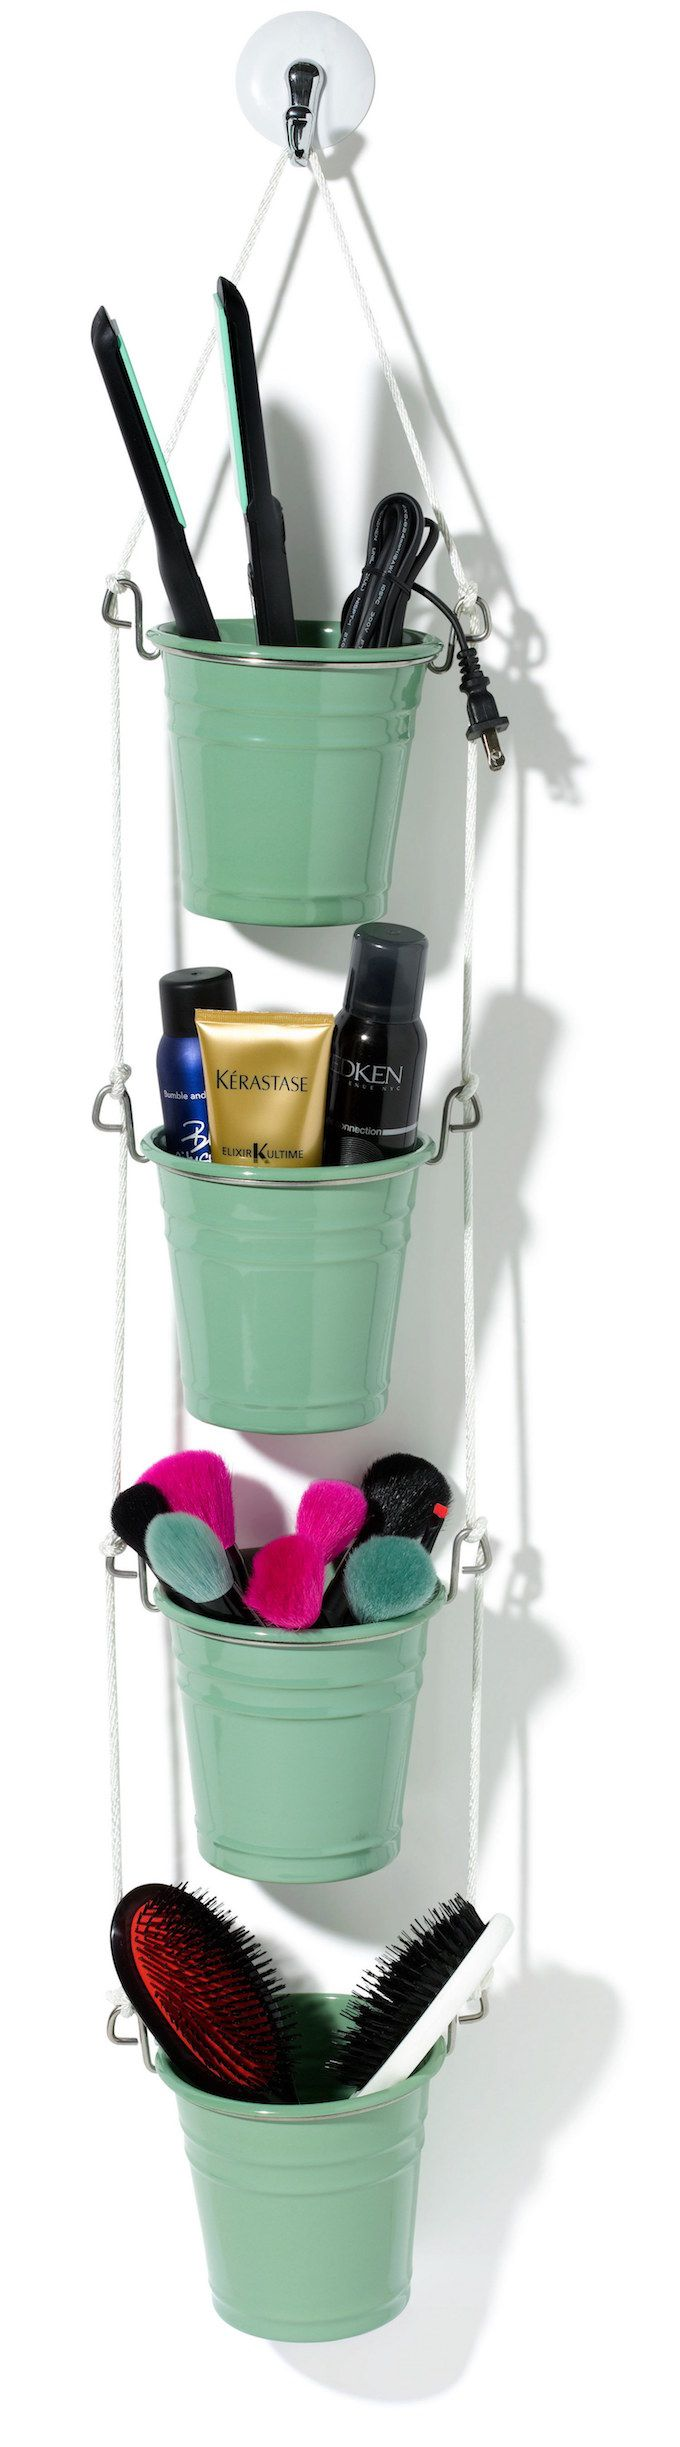 bucket hanging storage diy bathroom